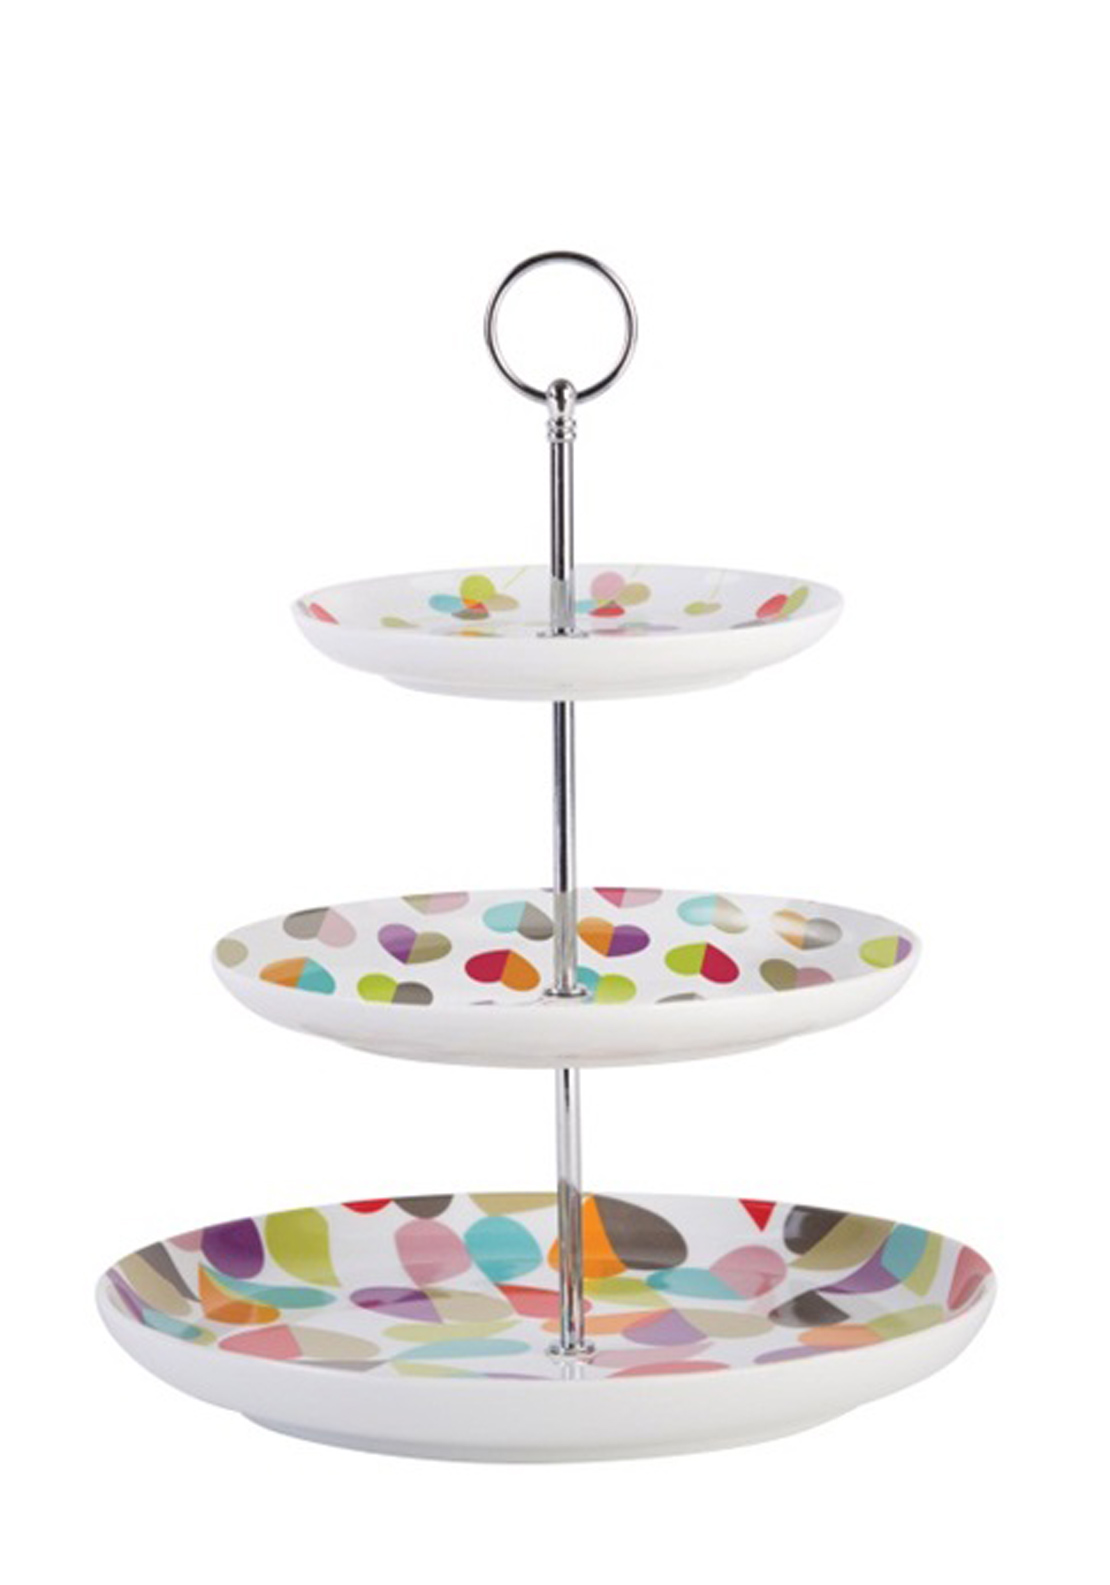 Beau & Elliot Broken Hearted Three Tier Cake Stand, Multi-Coloured